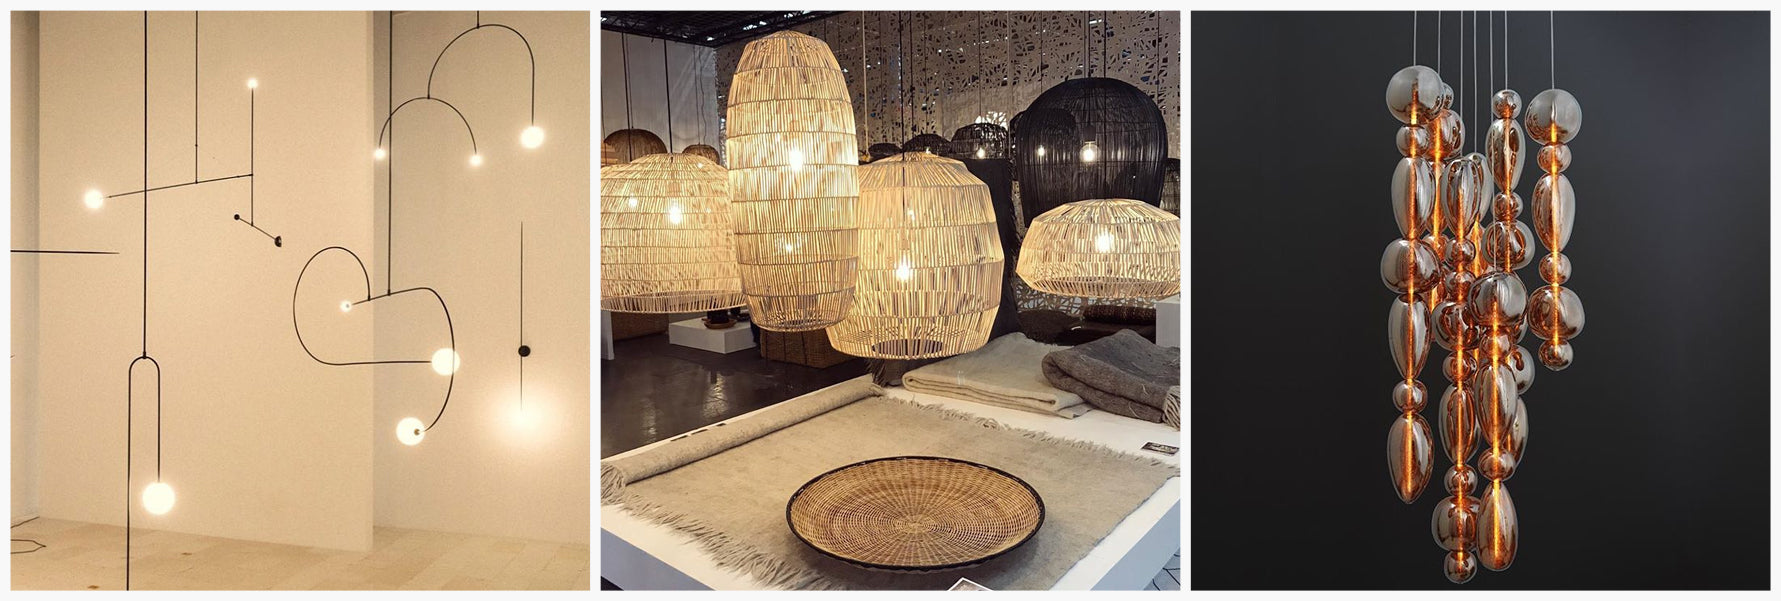 Maison et Objet Trends | Modern Lighting, Rattan Lighting, Glass Lighting | Shop at LuxDeco.com